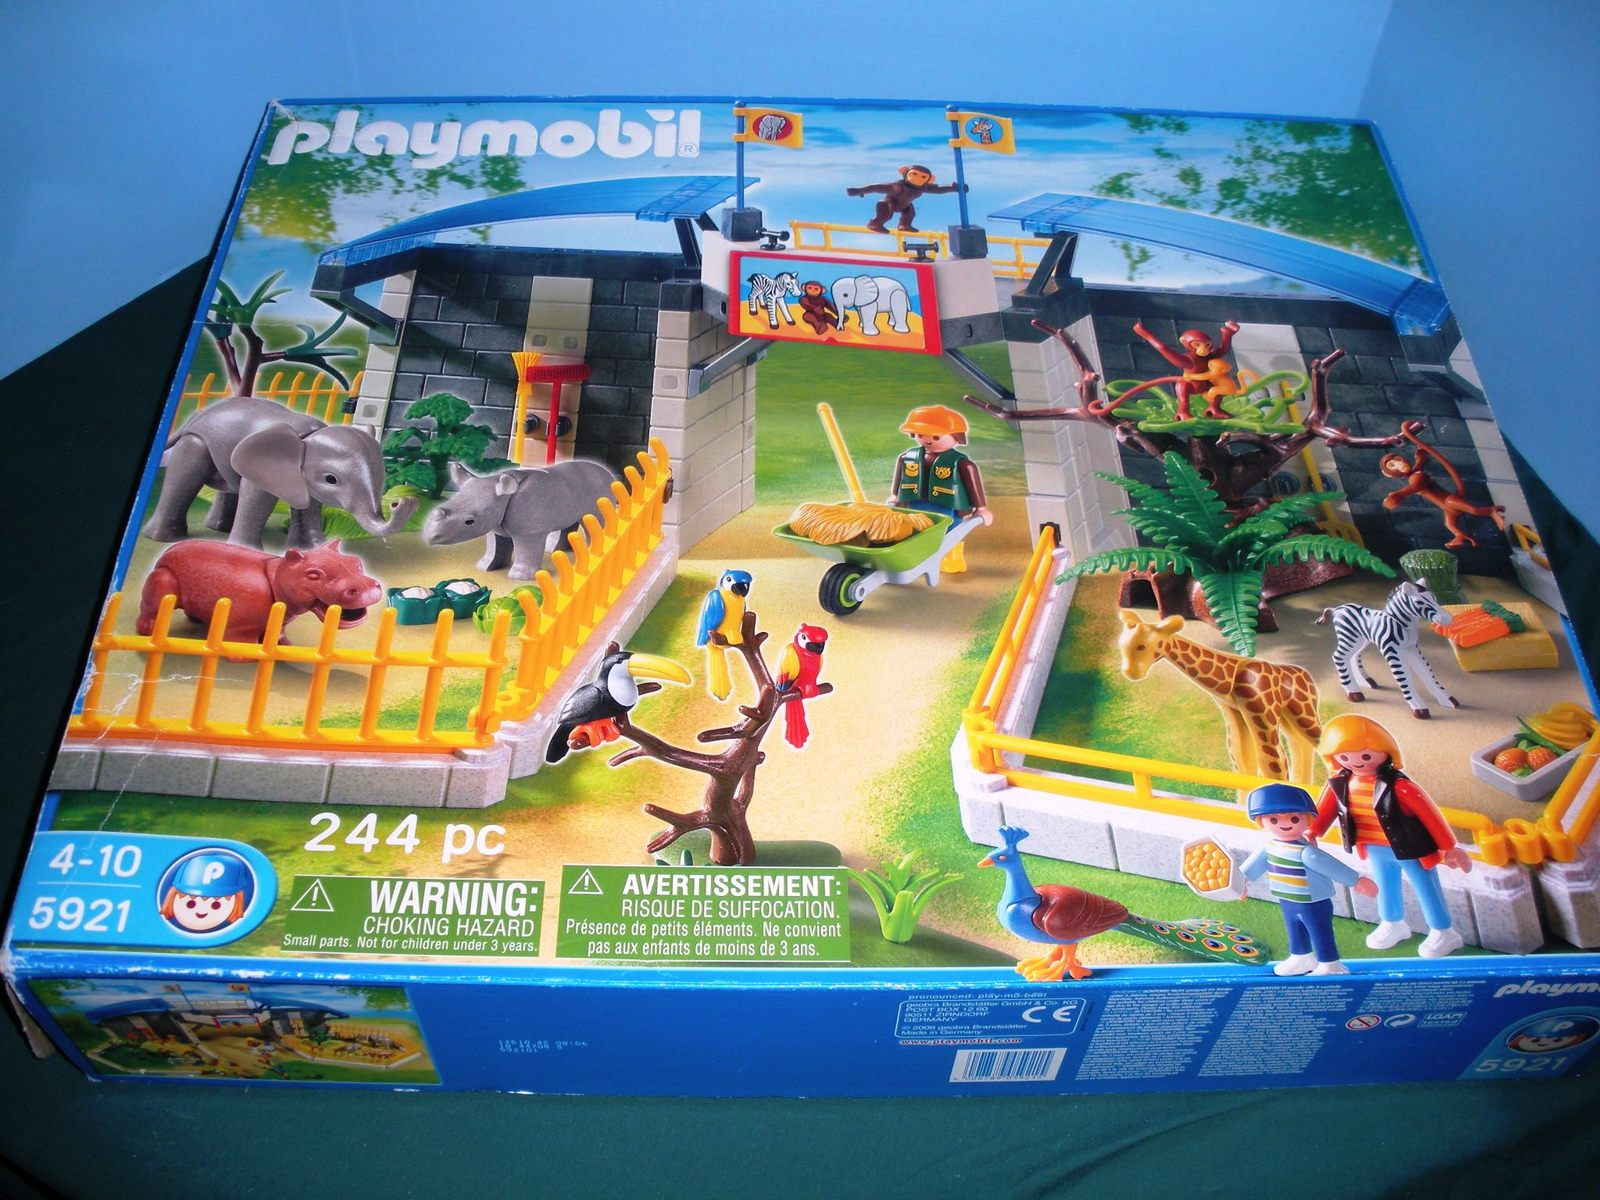 Vintage Playmobil #5921 Zoo of Baby Animals Comp./NIB with Instructions! (B)